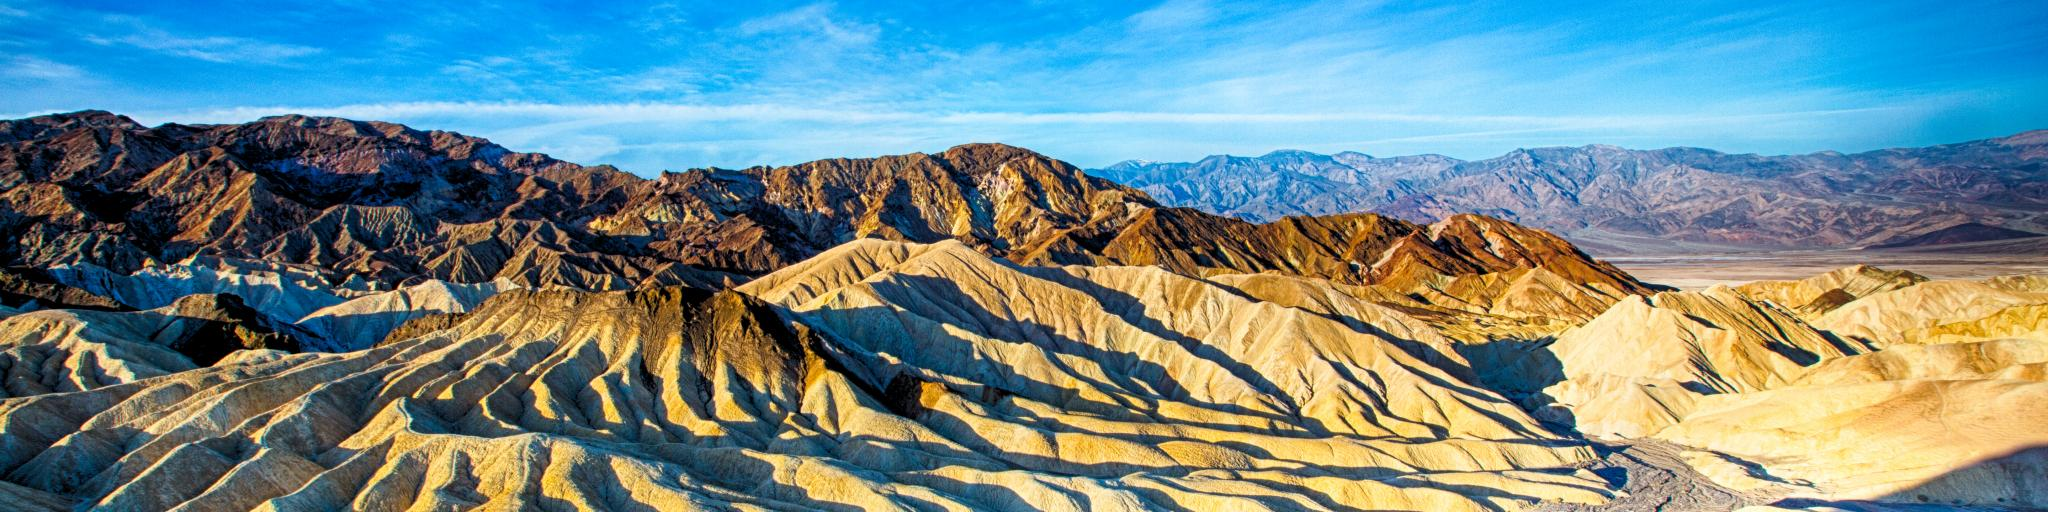 An image that shows how the Zabriskie Point in Death Valley National Park, California, USA looks during sunrise in a clear and bright sky.